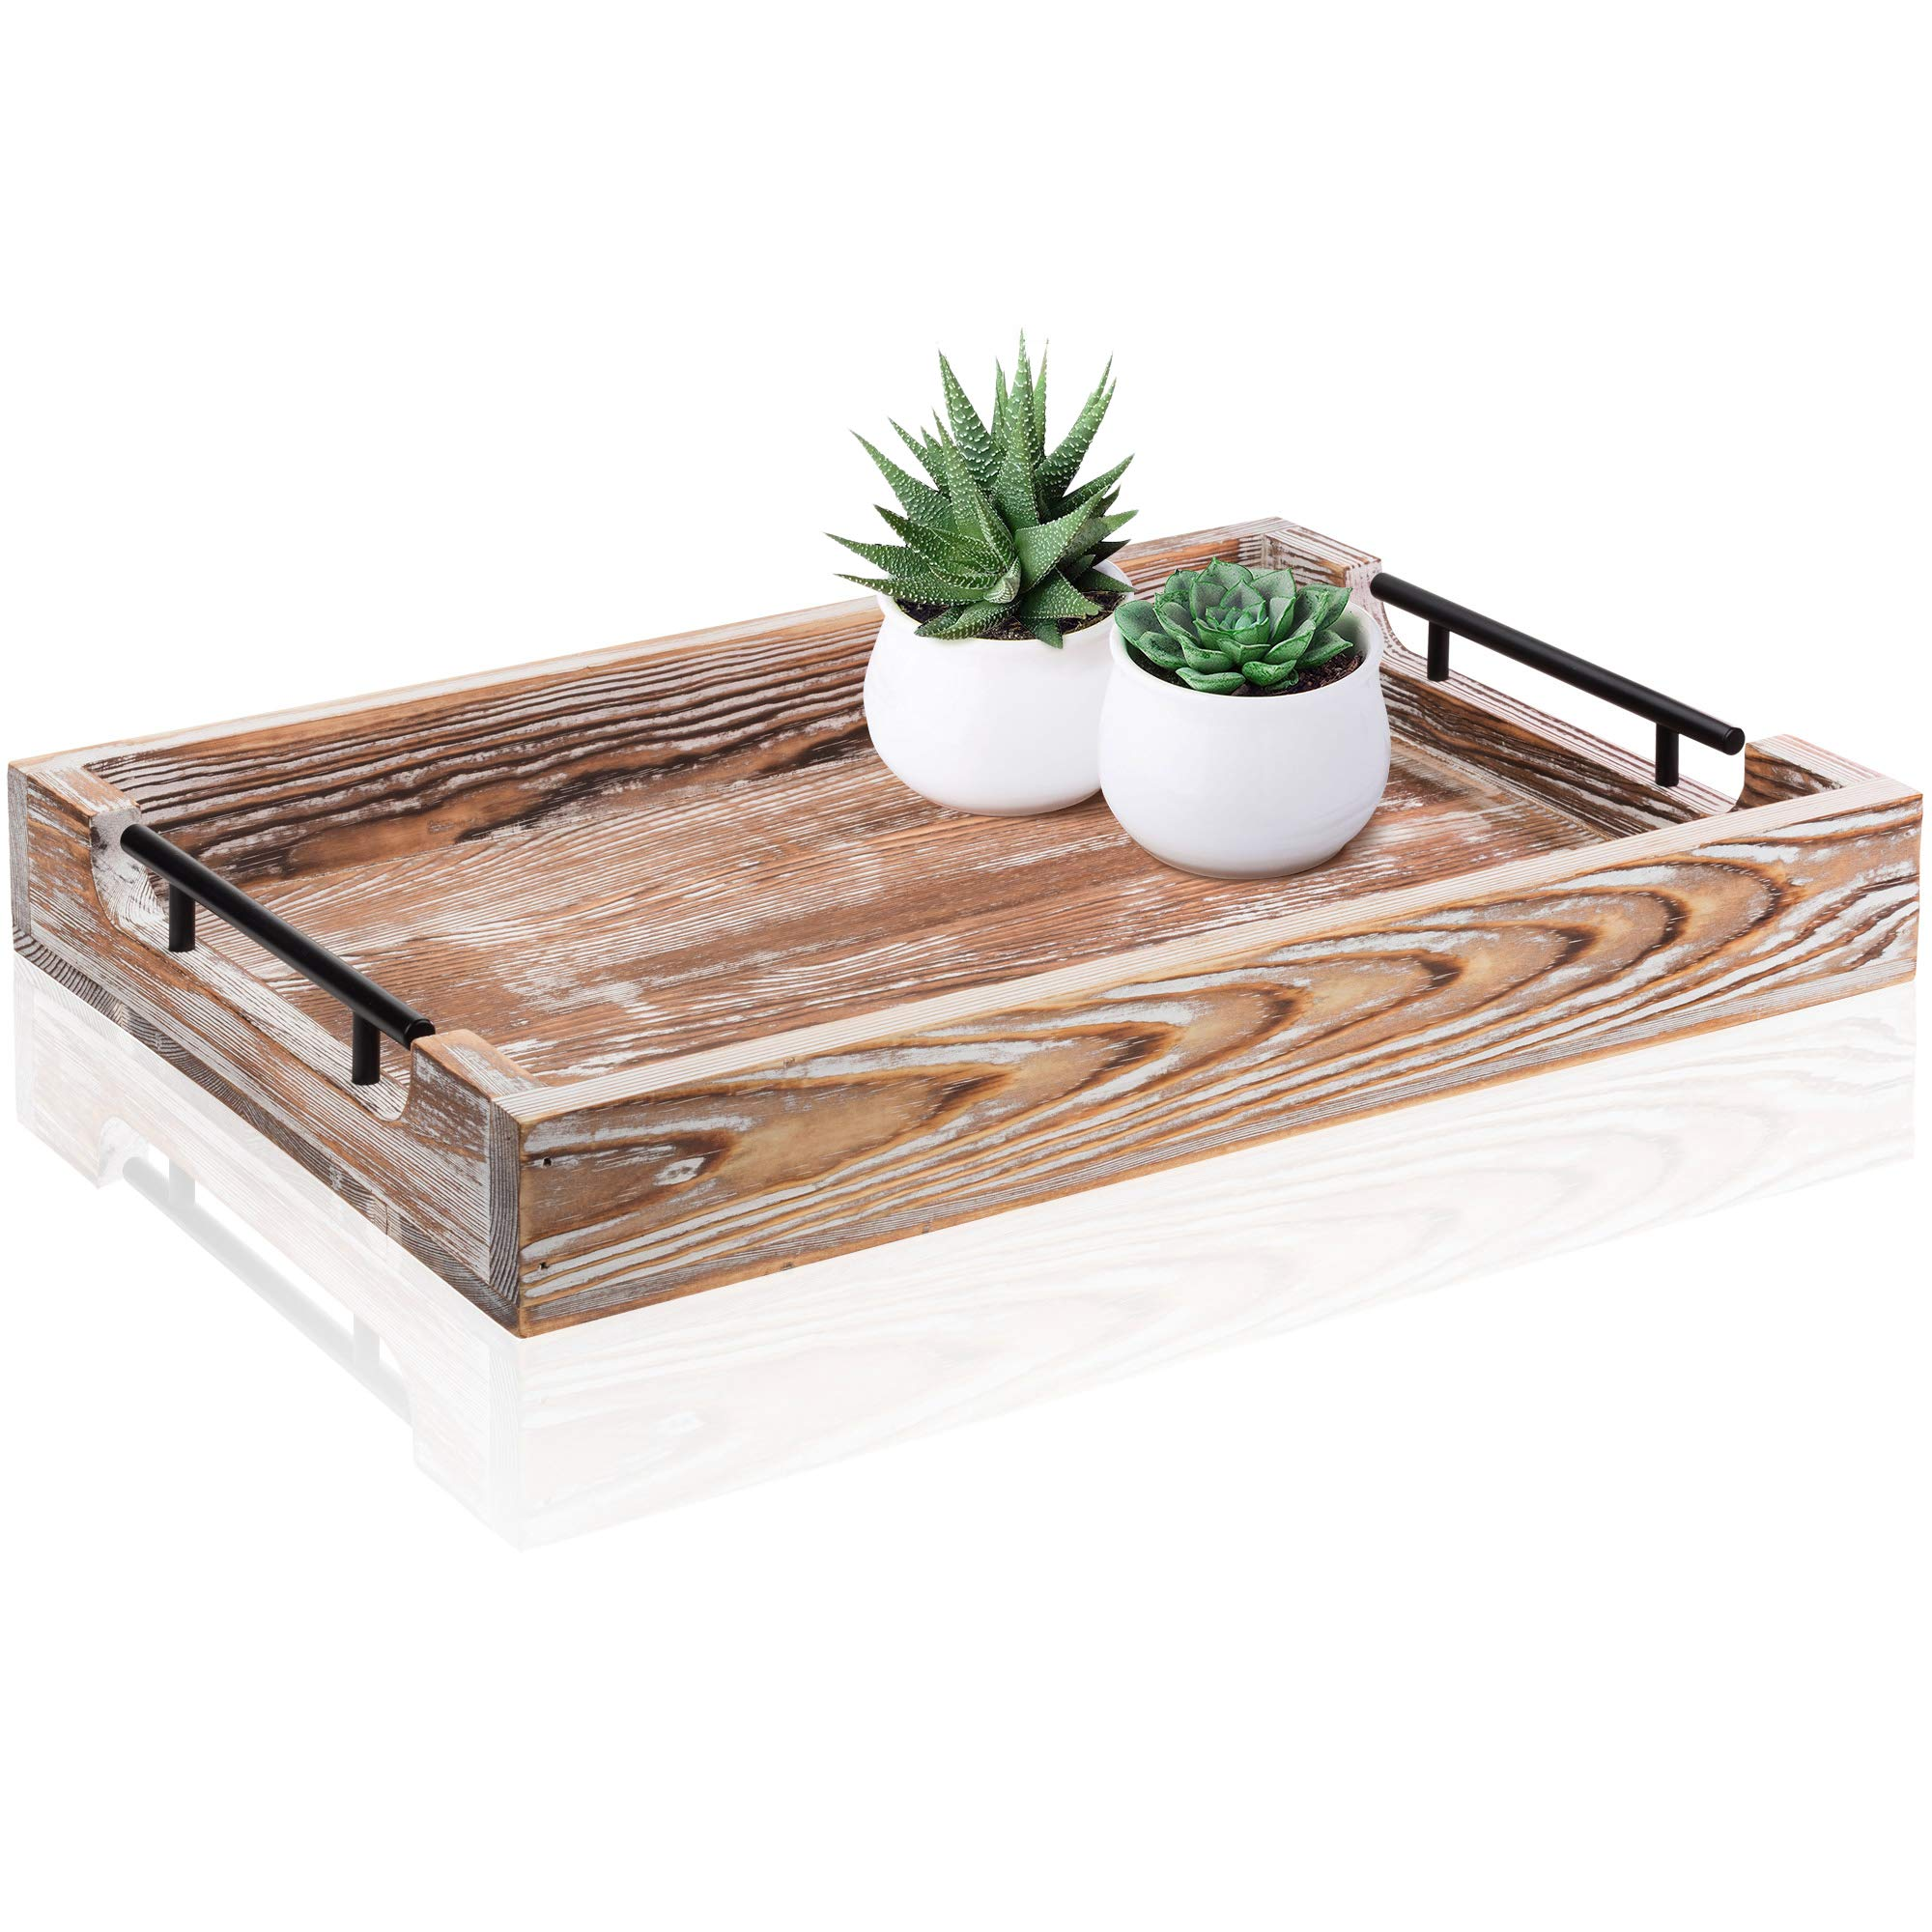 Large Ottoman Tray with Handles - 20''x14'' - Coffee Table Tray - Rustic Tray for Ottoman - Wooden Trays for Coffee Table - Wooden Serving Trays for Ottomans - Ottoman Trays Home Decor - Farmhouse Tray